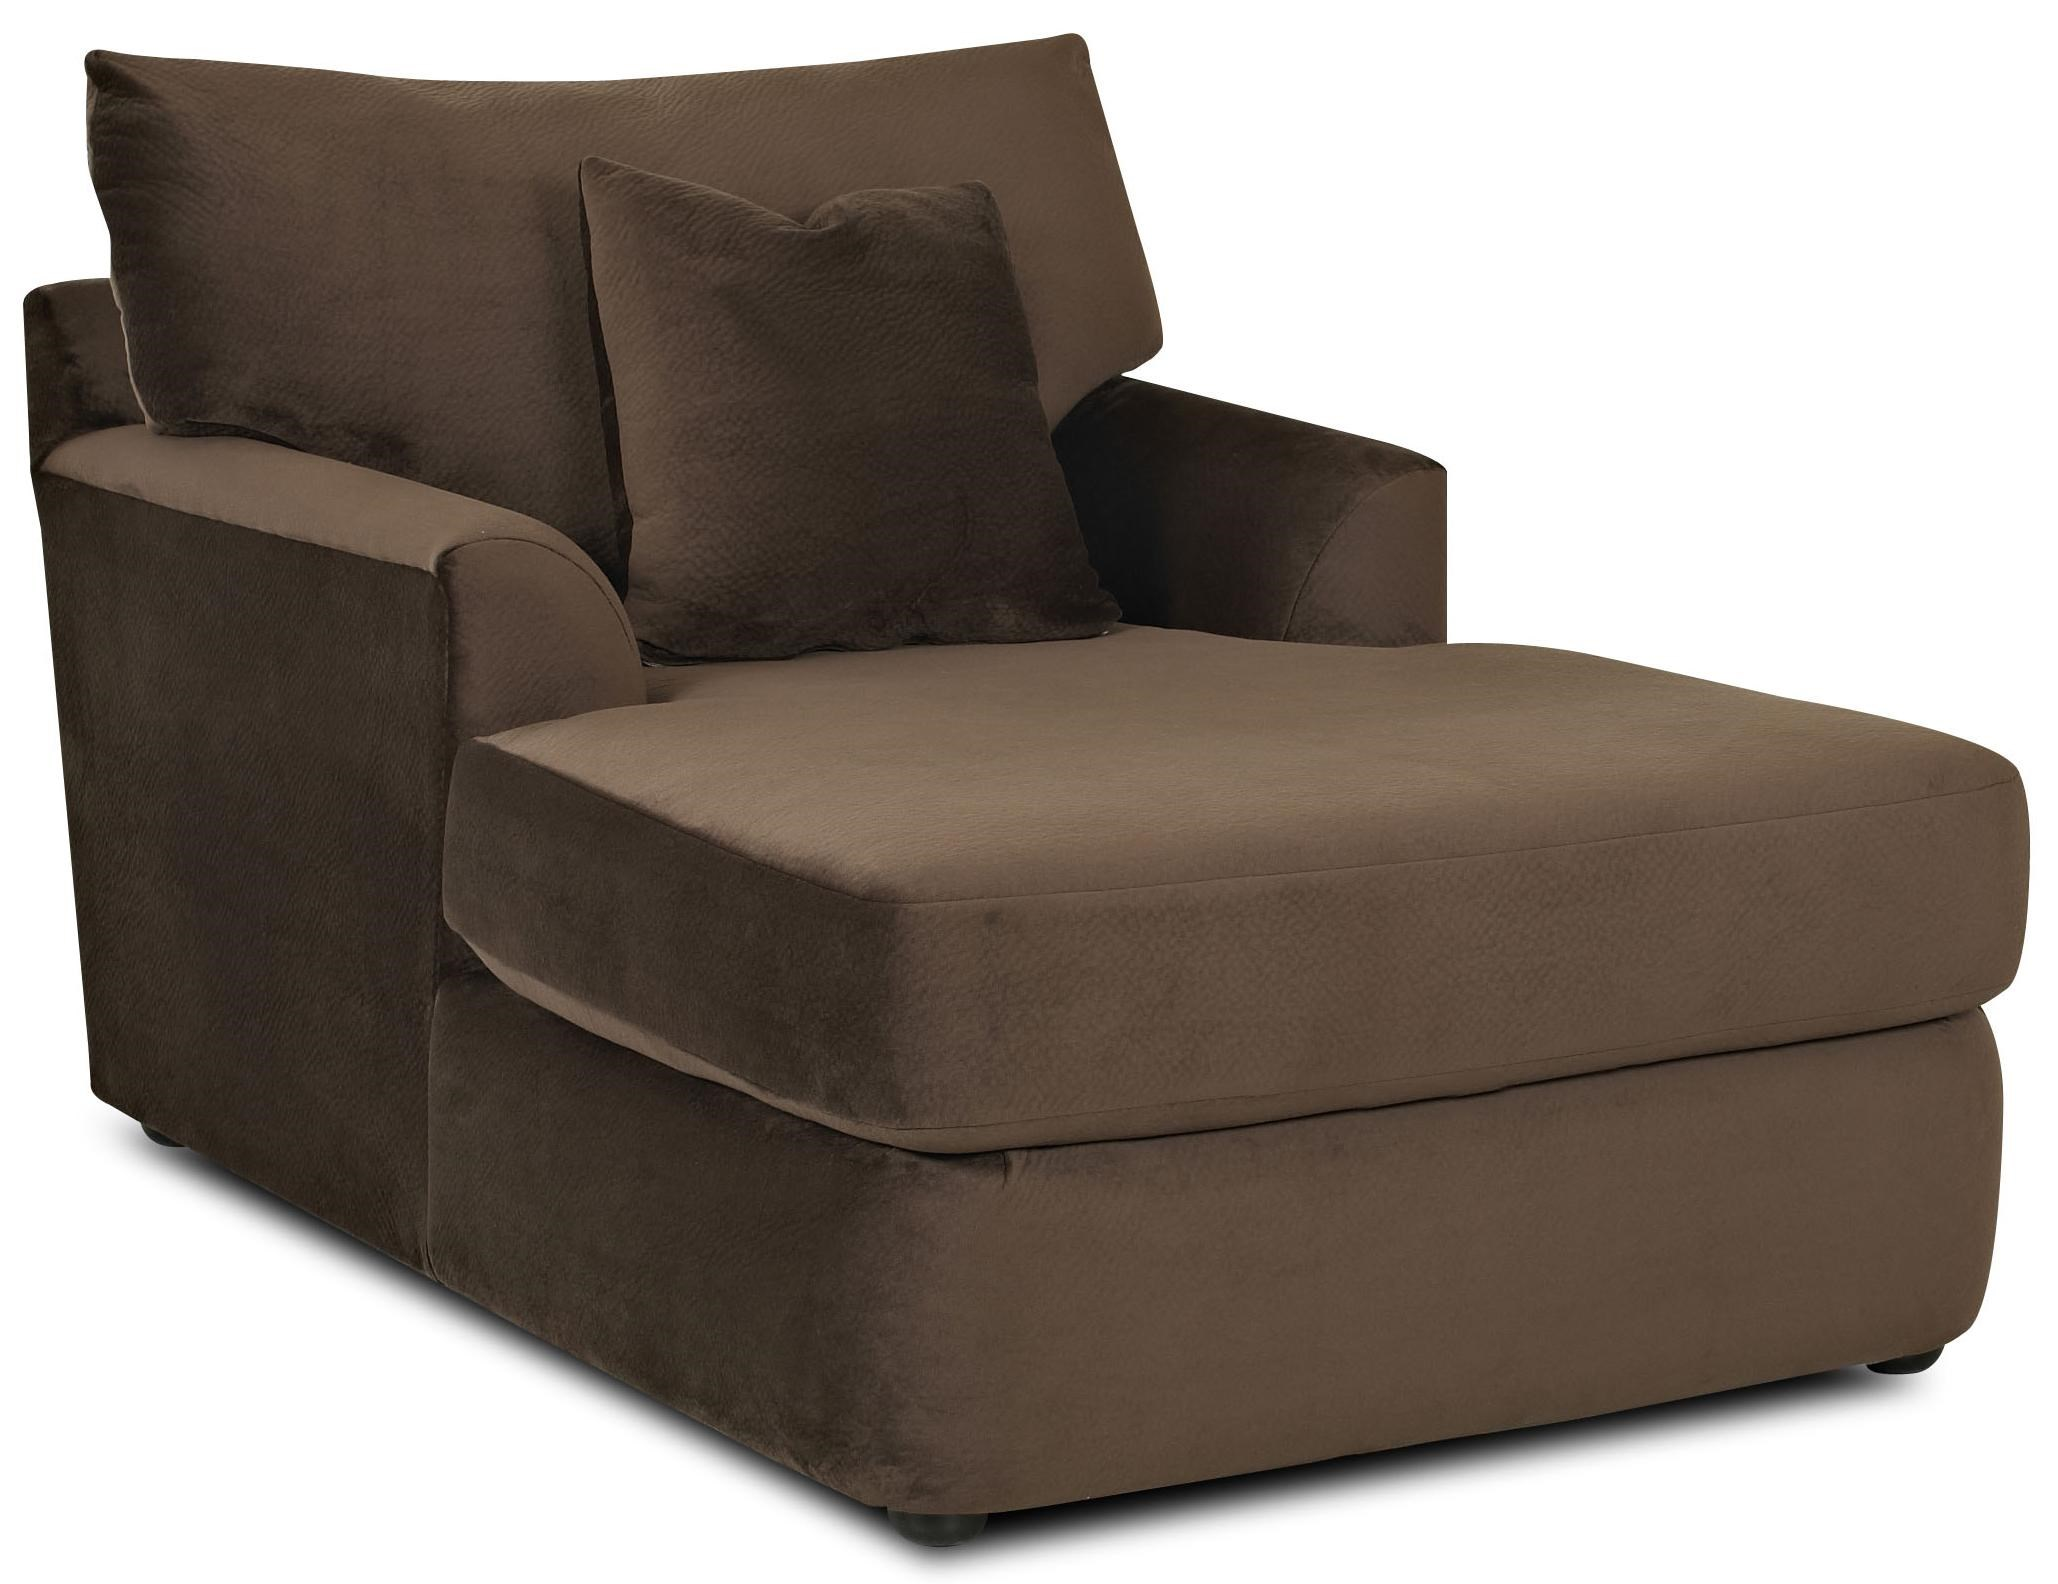 Klaussner FindleyChaise Lounge ...